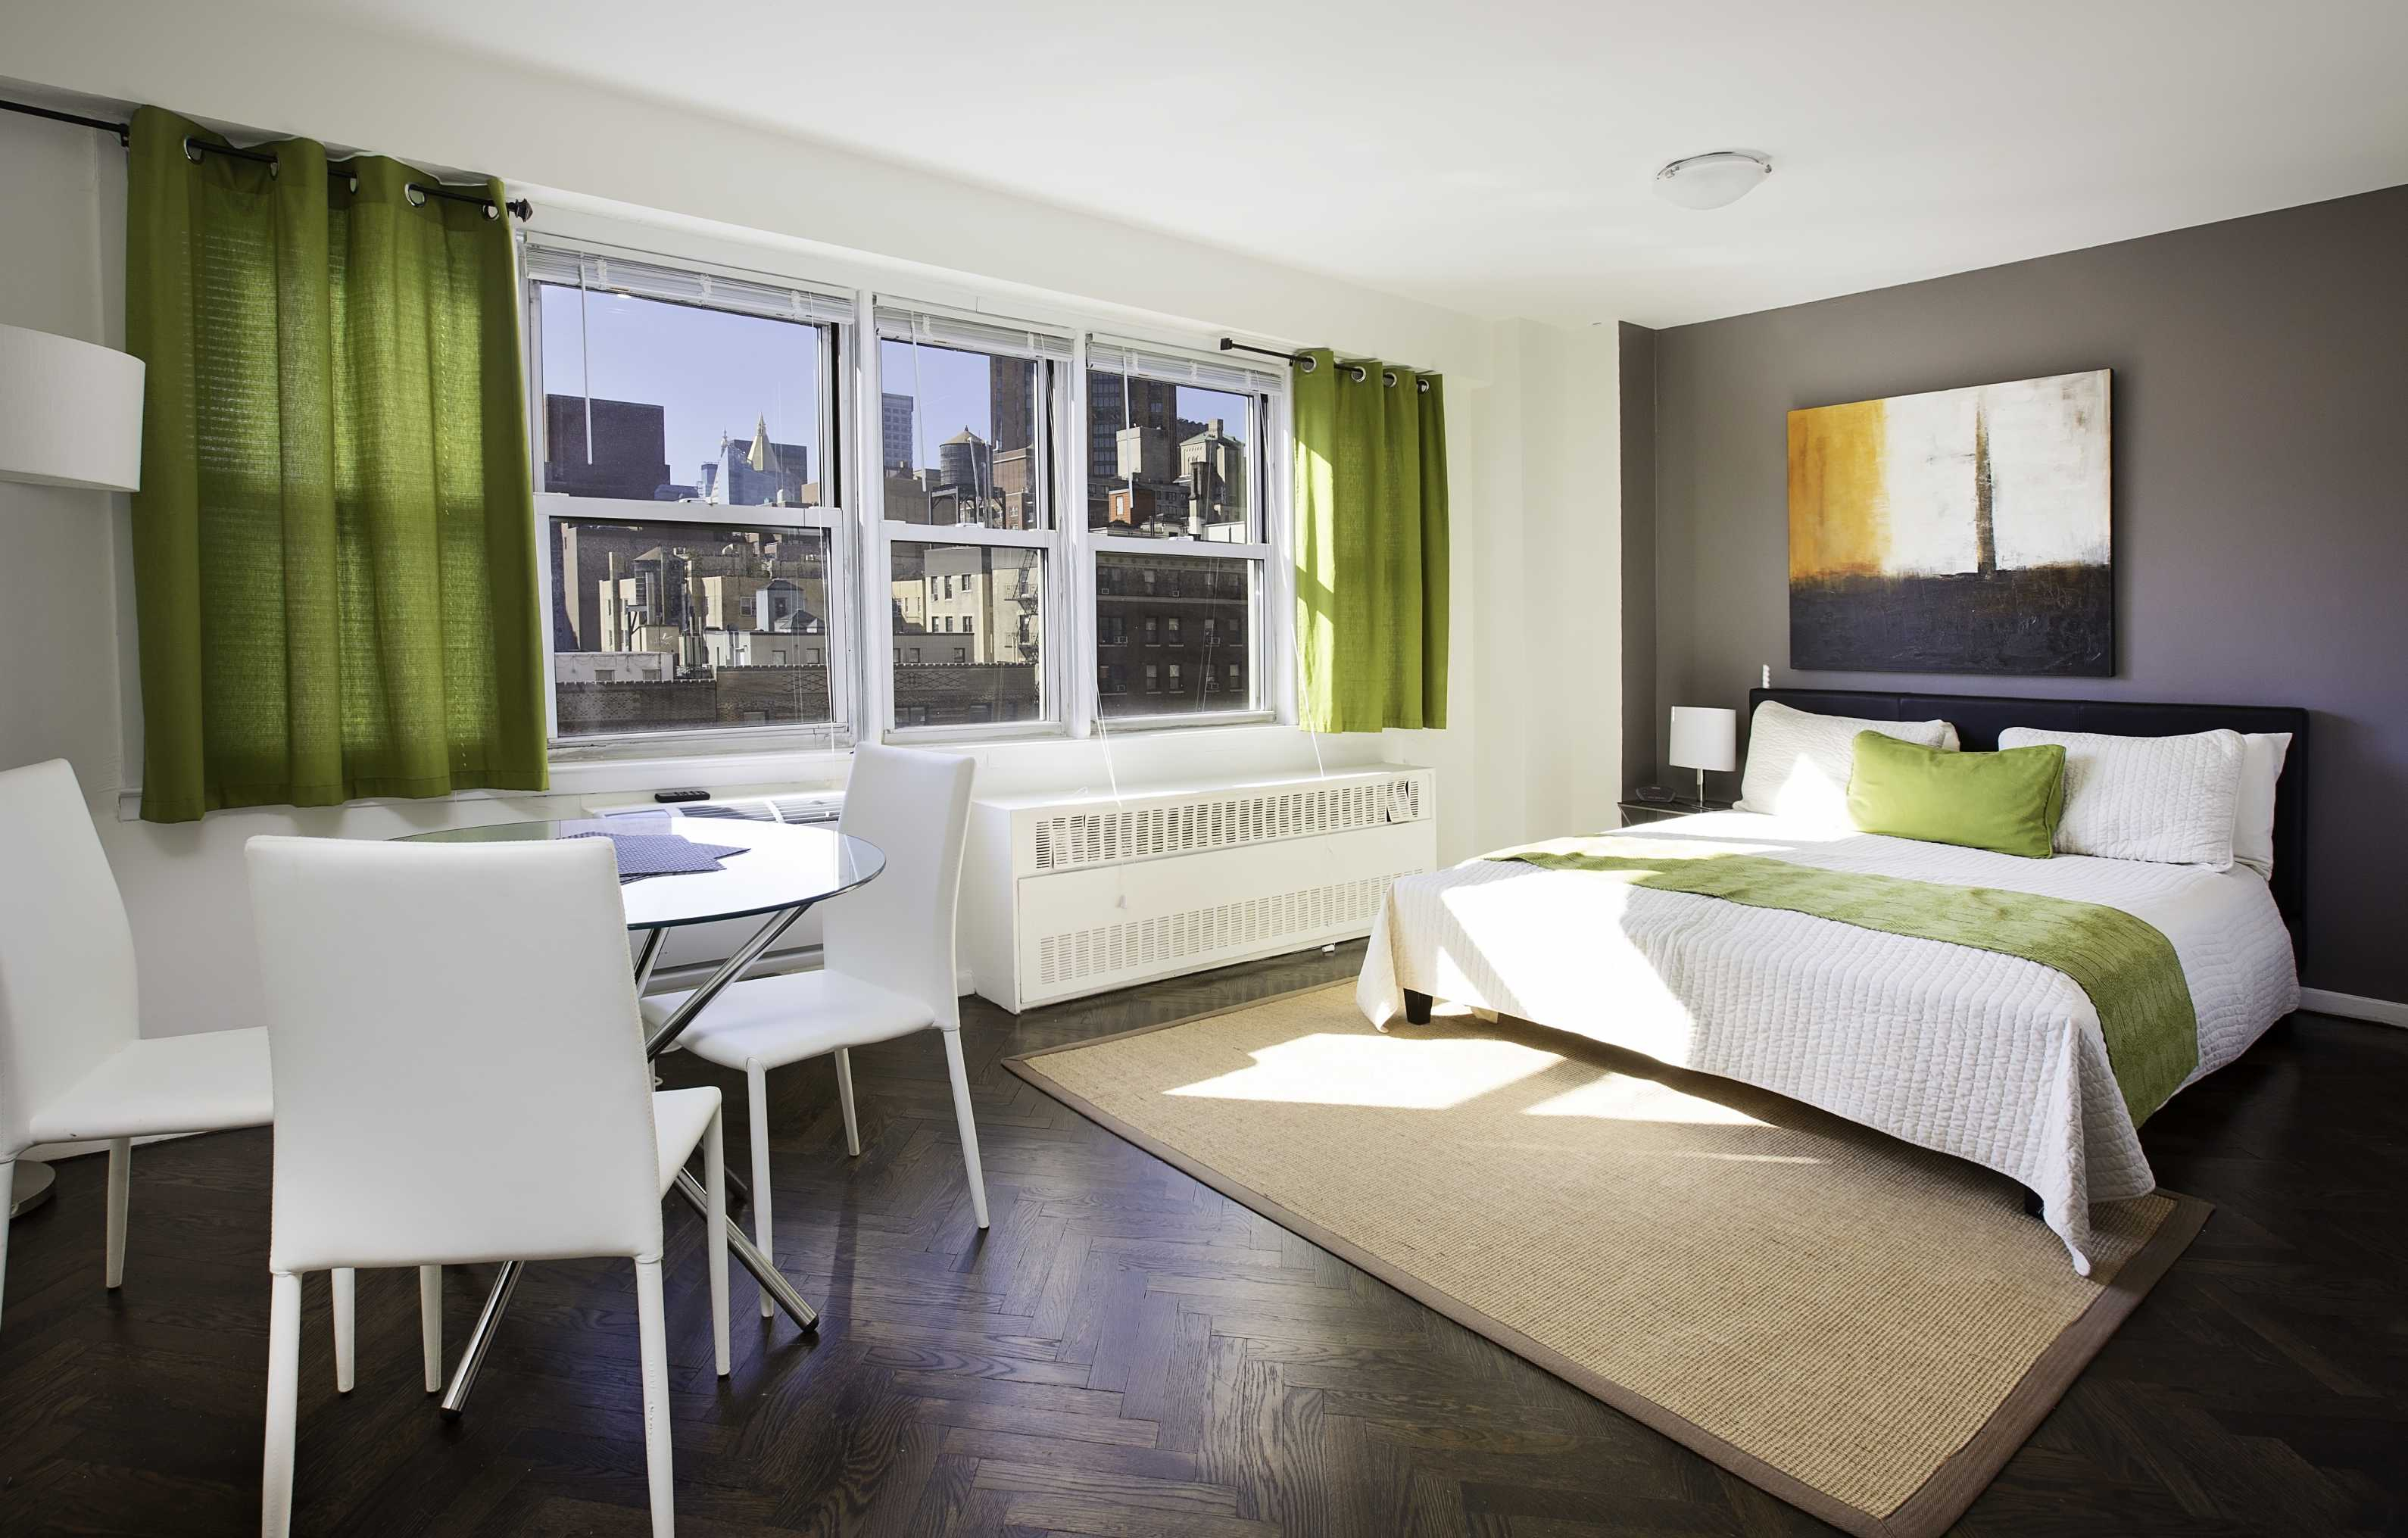 Don 39 t sacrifice quality when searching for temporary accommodation ipromtg Cost of one bedroom apartment in san francisco